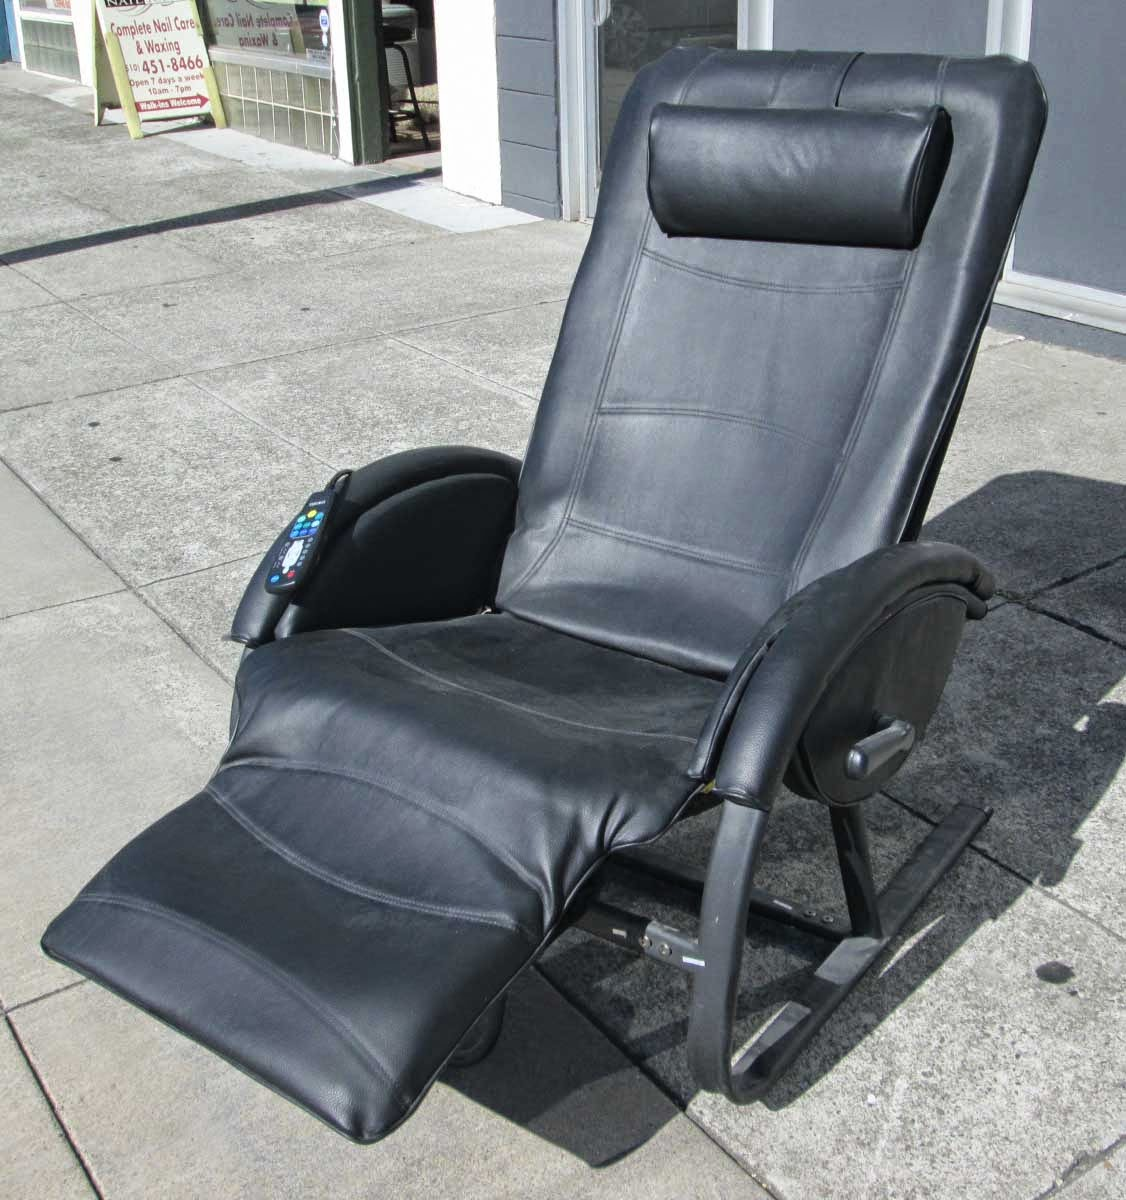 Homedics Reclining Chair Uhuru Furniture Collectibles Sold Antigravity Recliner 120